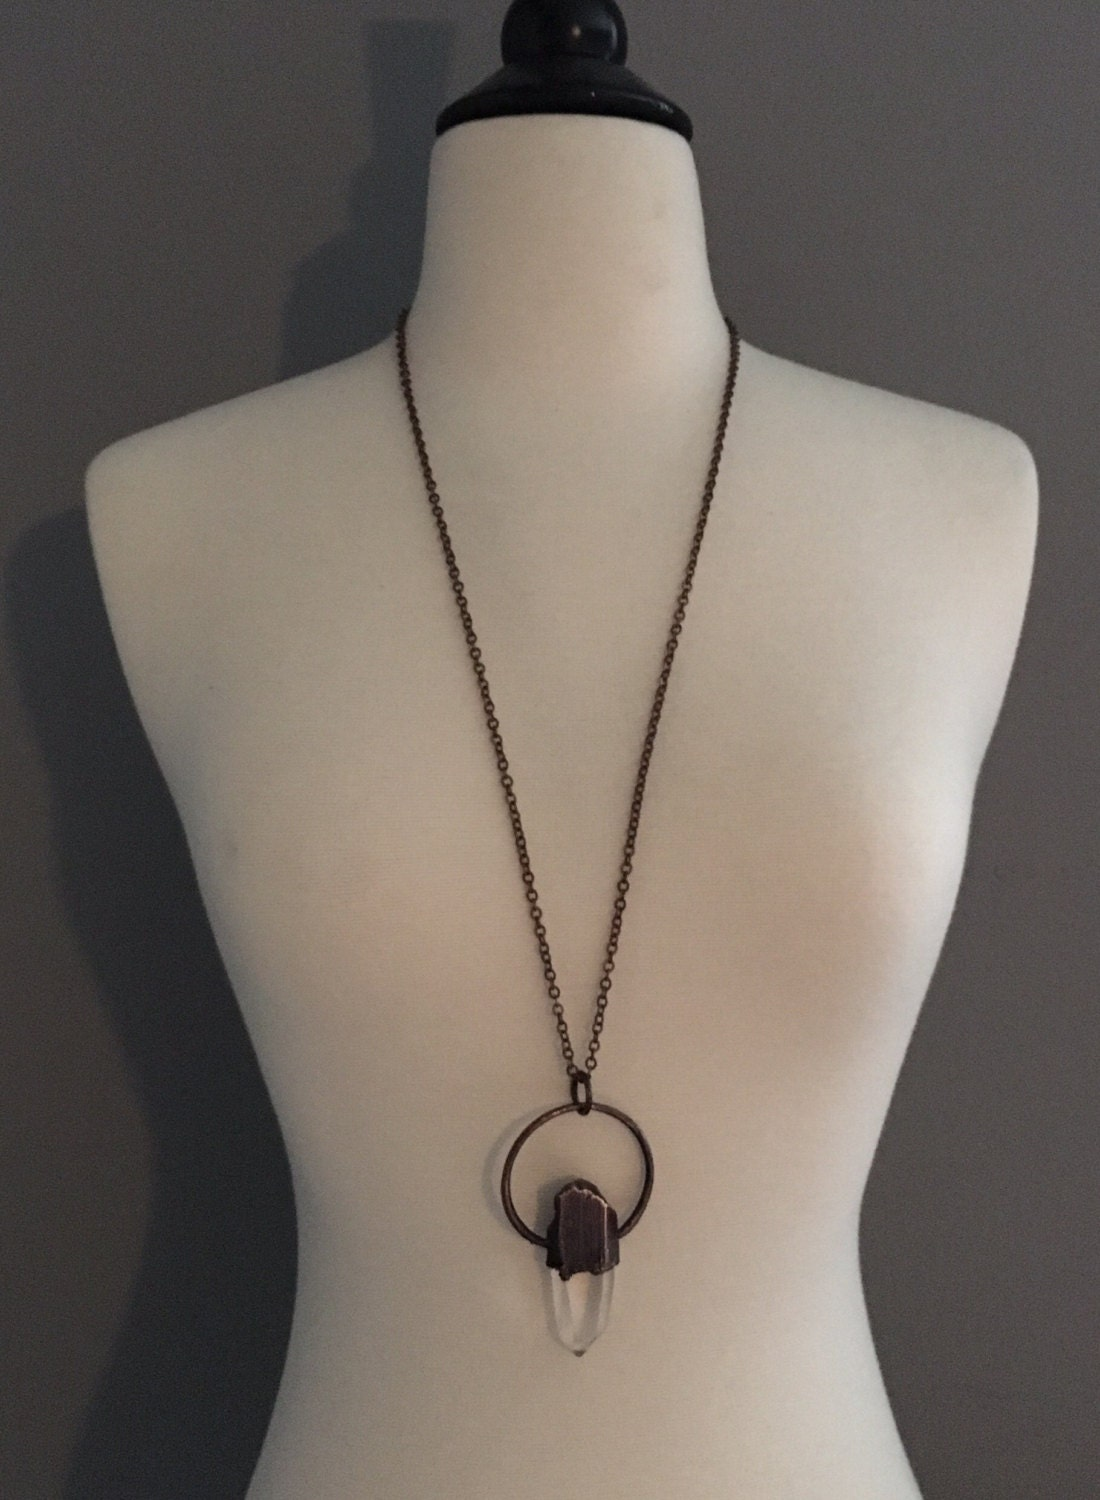 Large Raw Clear Quartz Necklace Crystal Healing Necklace Quartz Jewelry Raw Crystal Necklace